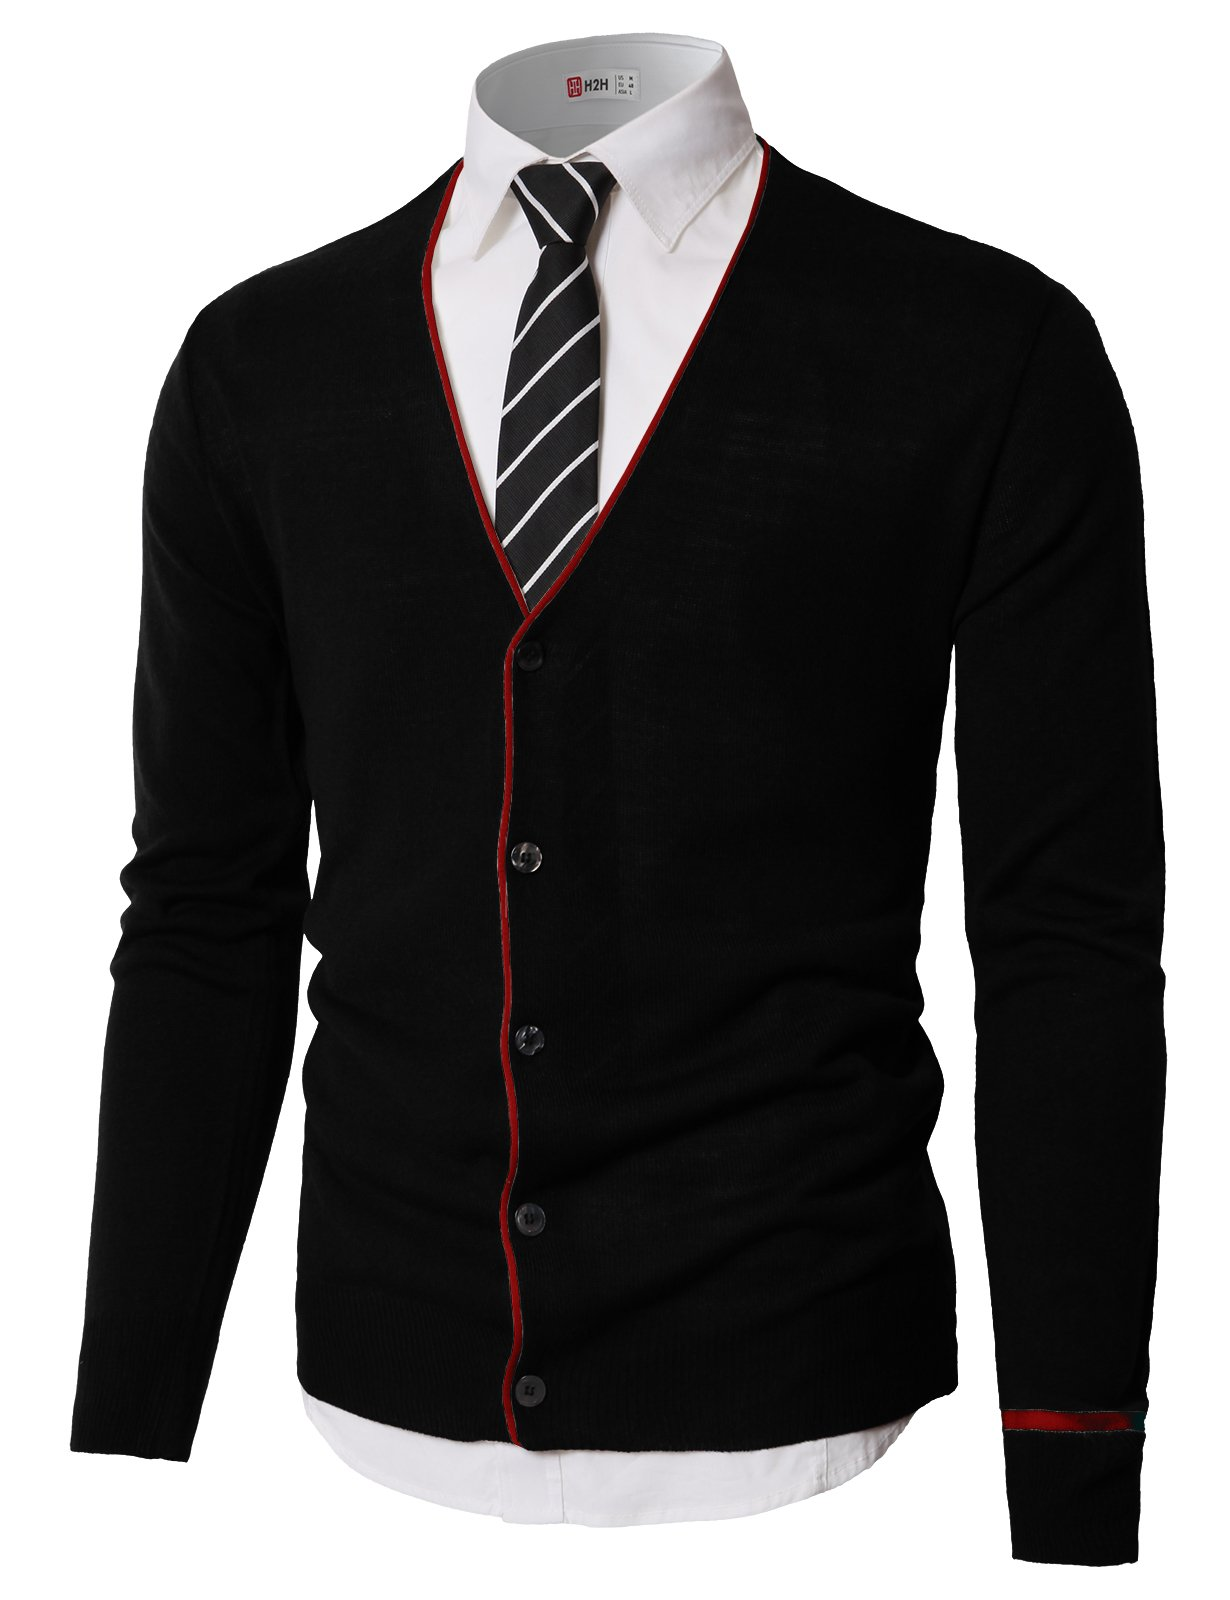 H2H Mens Classic Slim Fit Knit Button-Front Cardigan Long Sleeve Black US XL/Asia 2XL (KMOCAL0185)